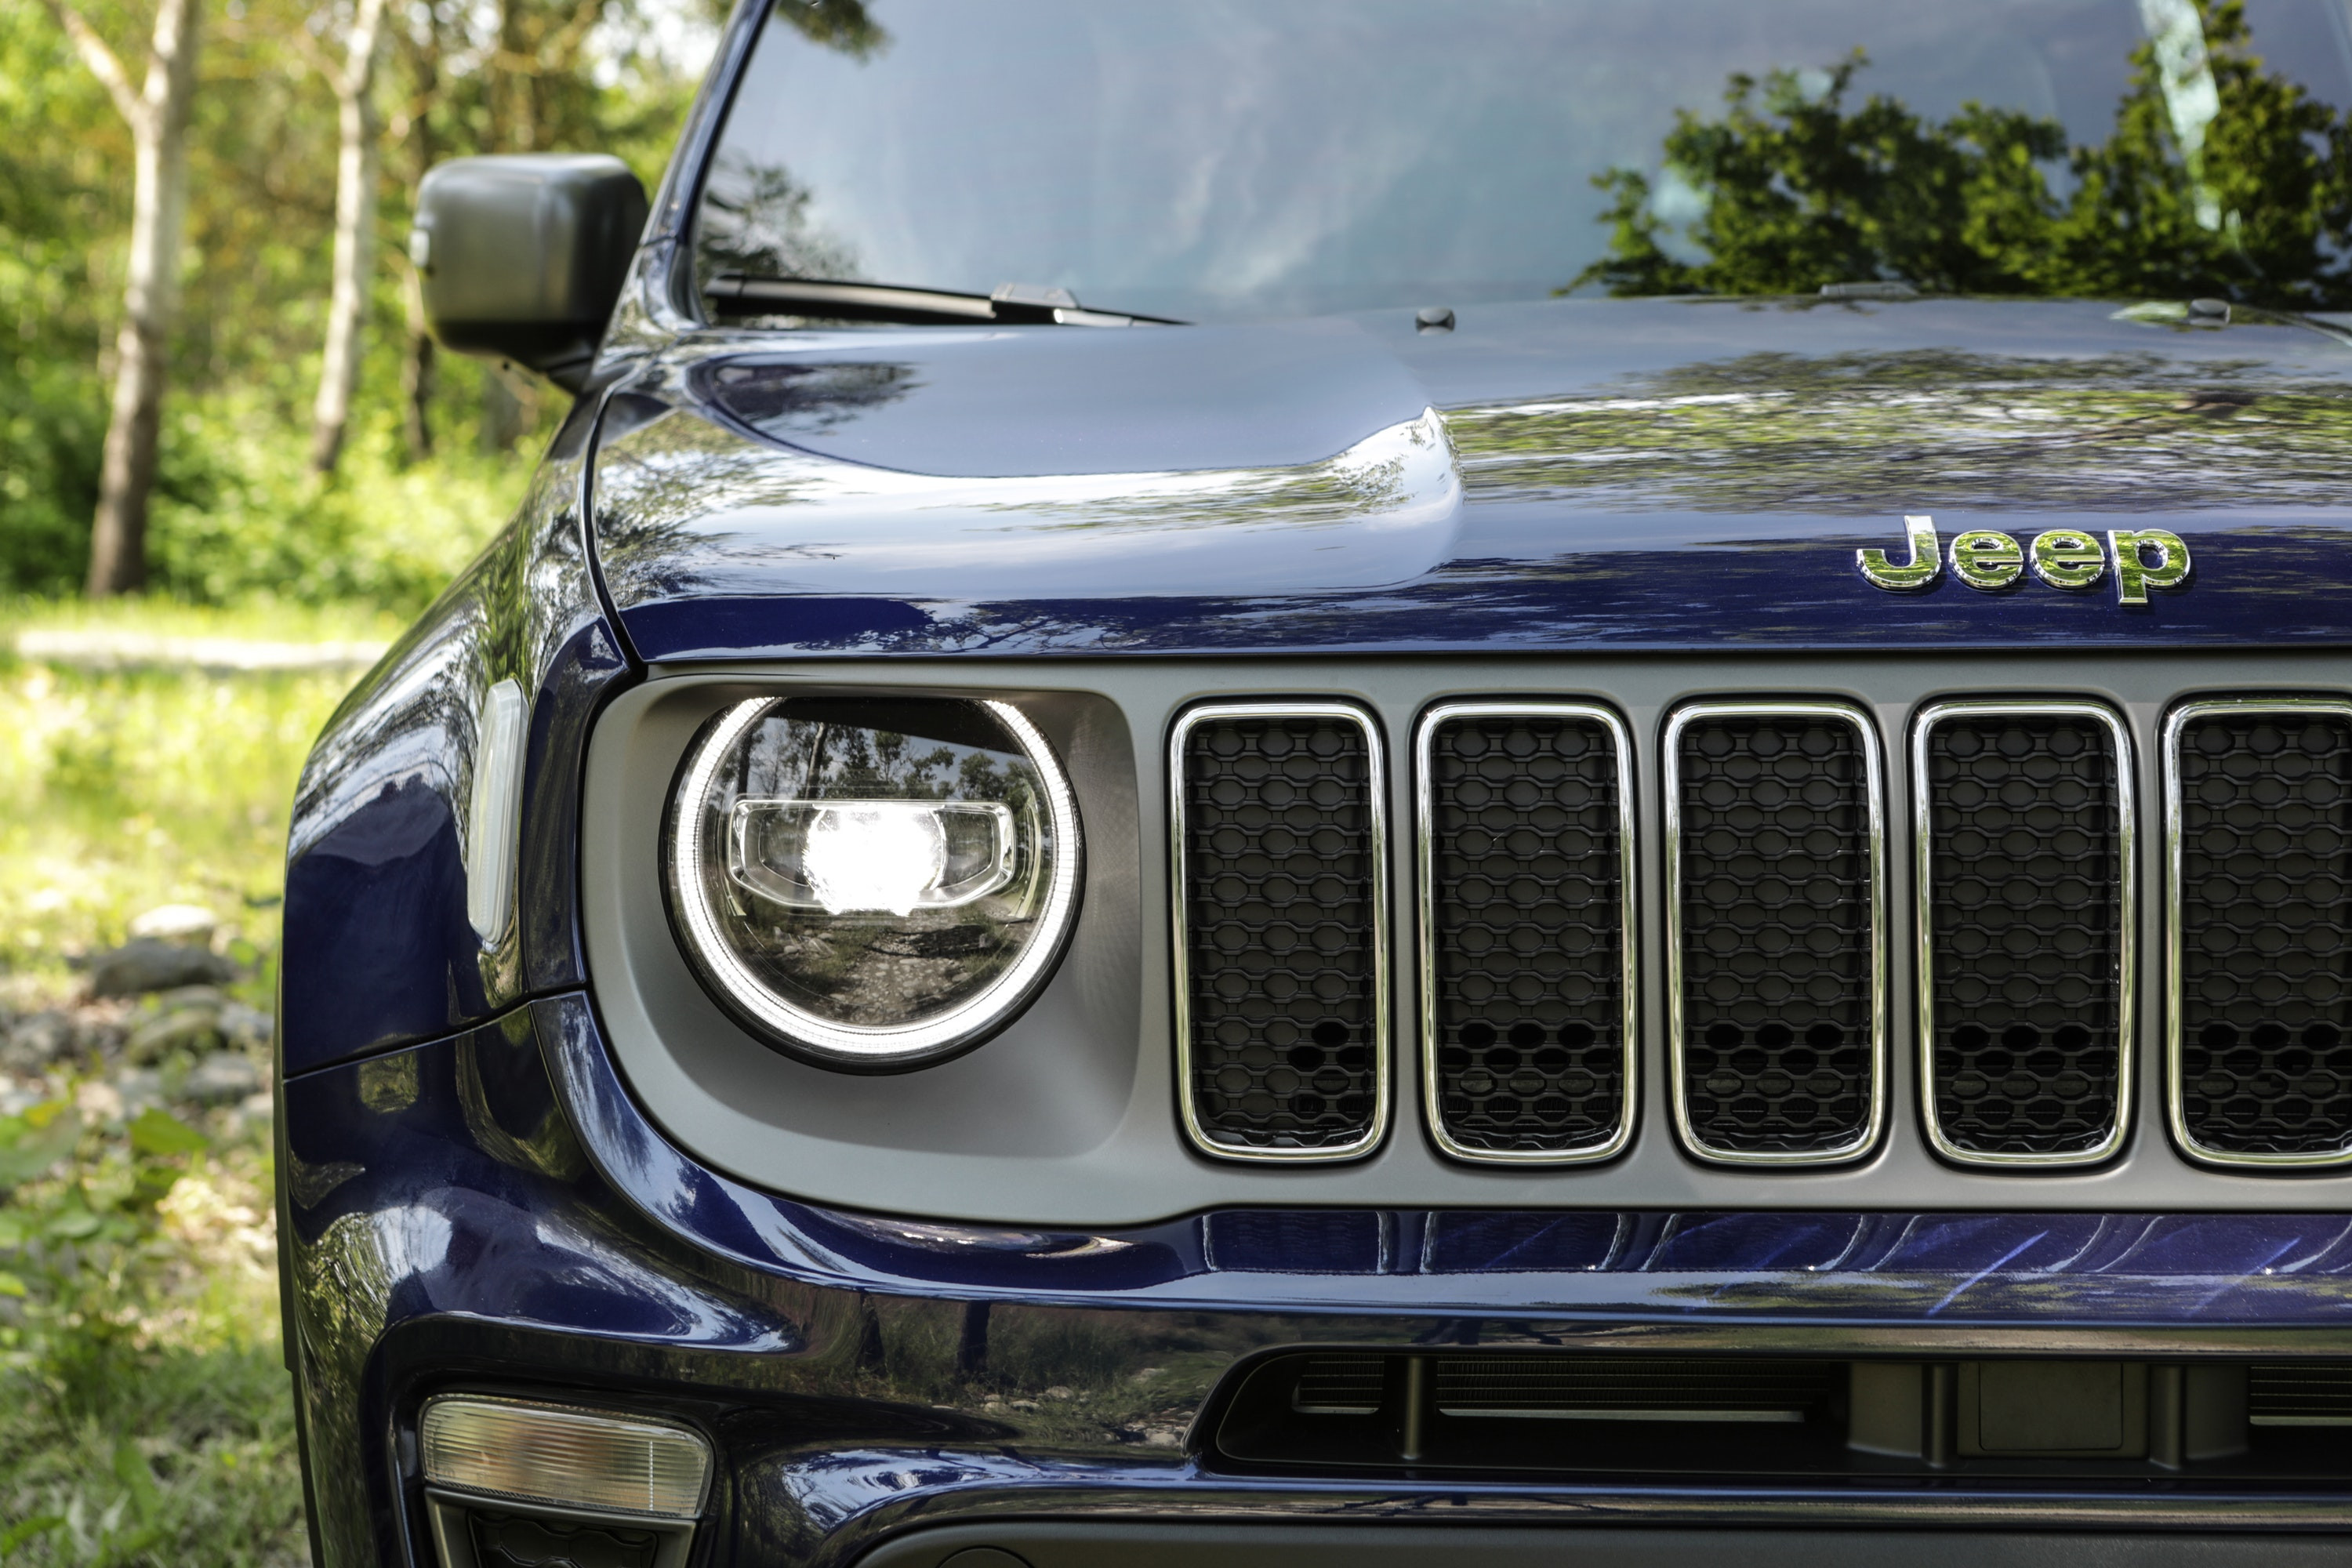 Half the front of a blue Jeep Renegade